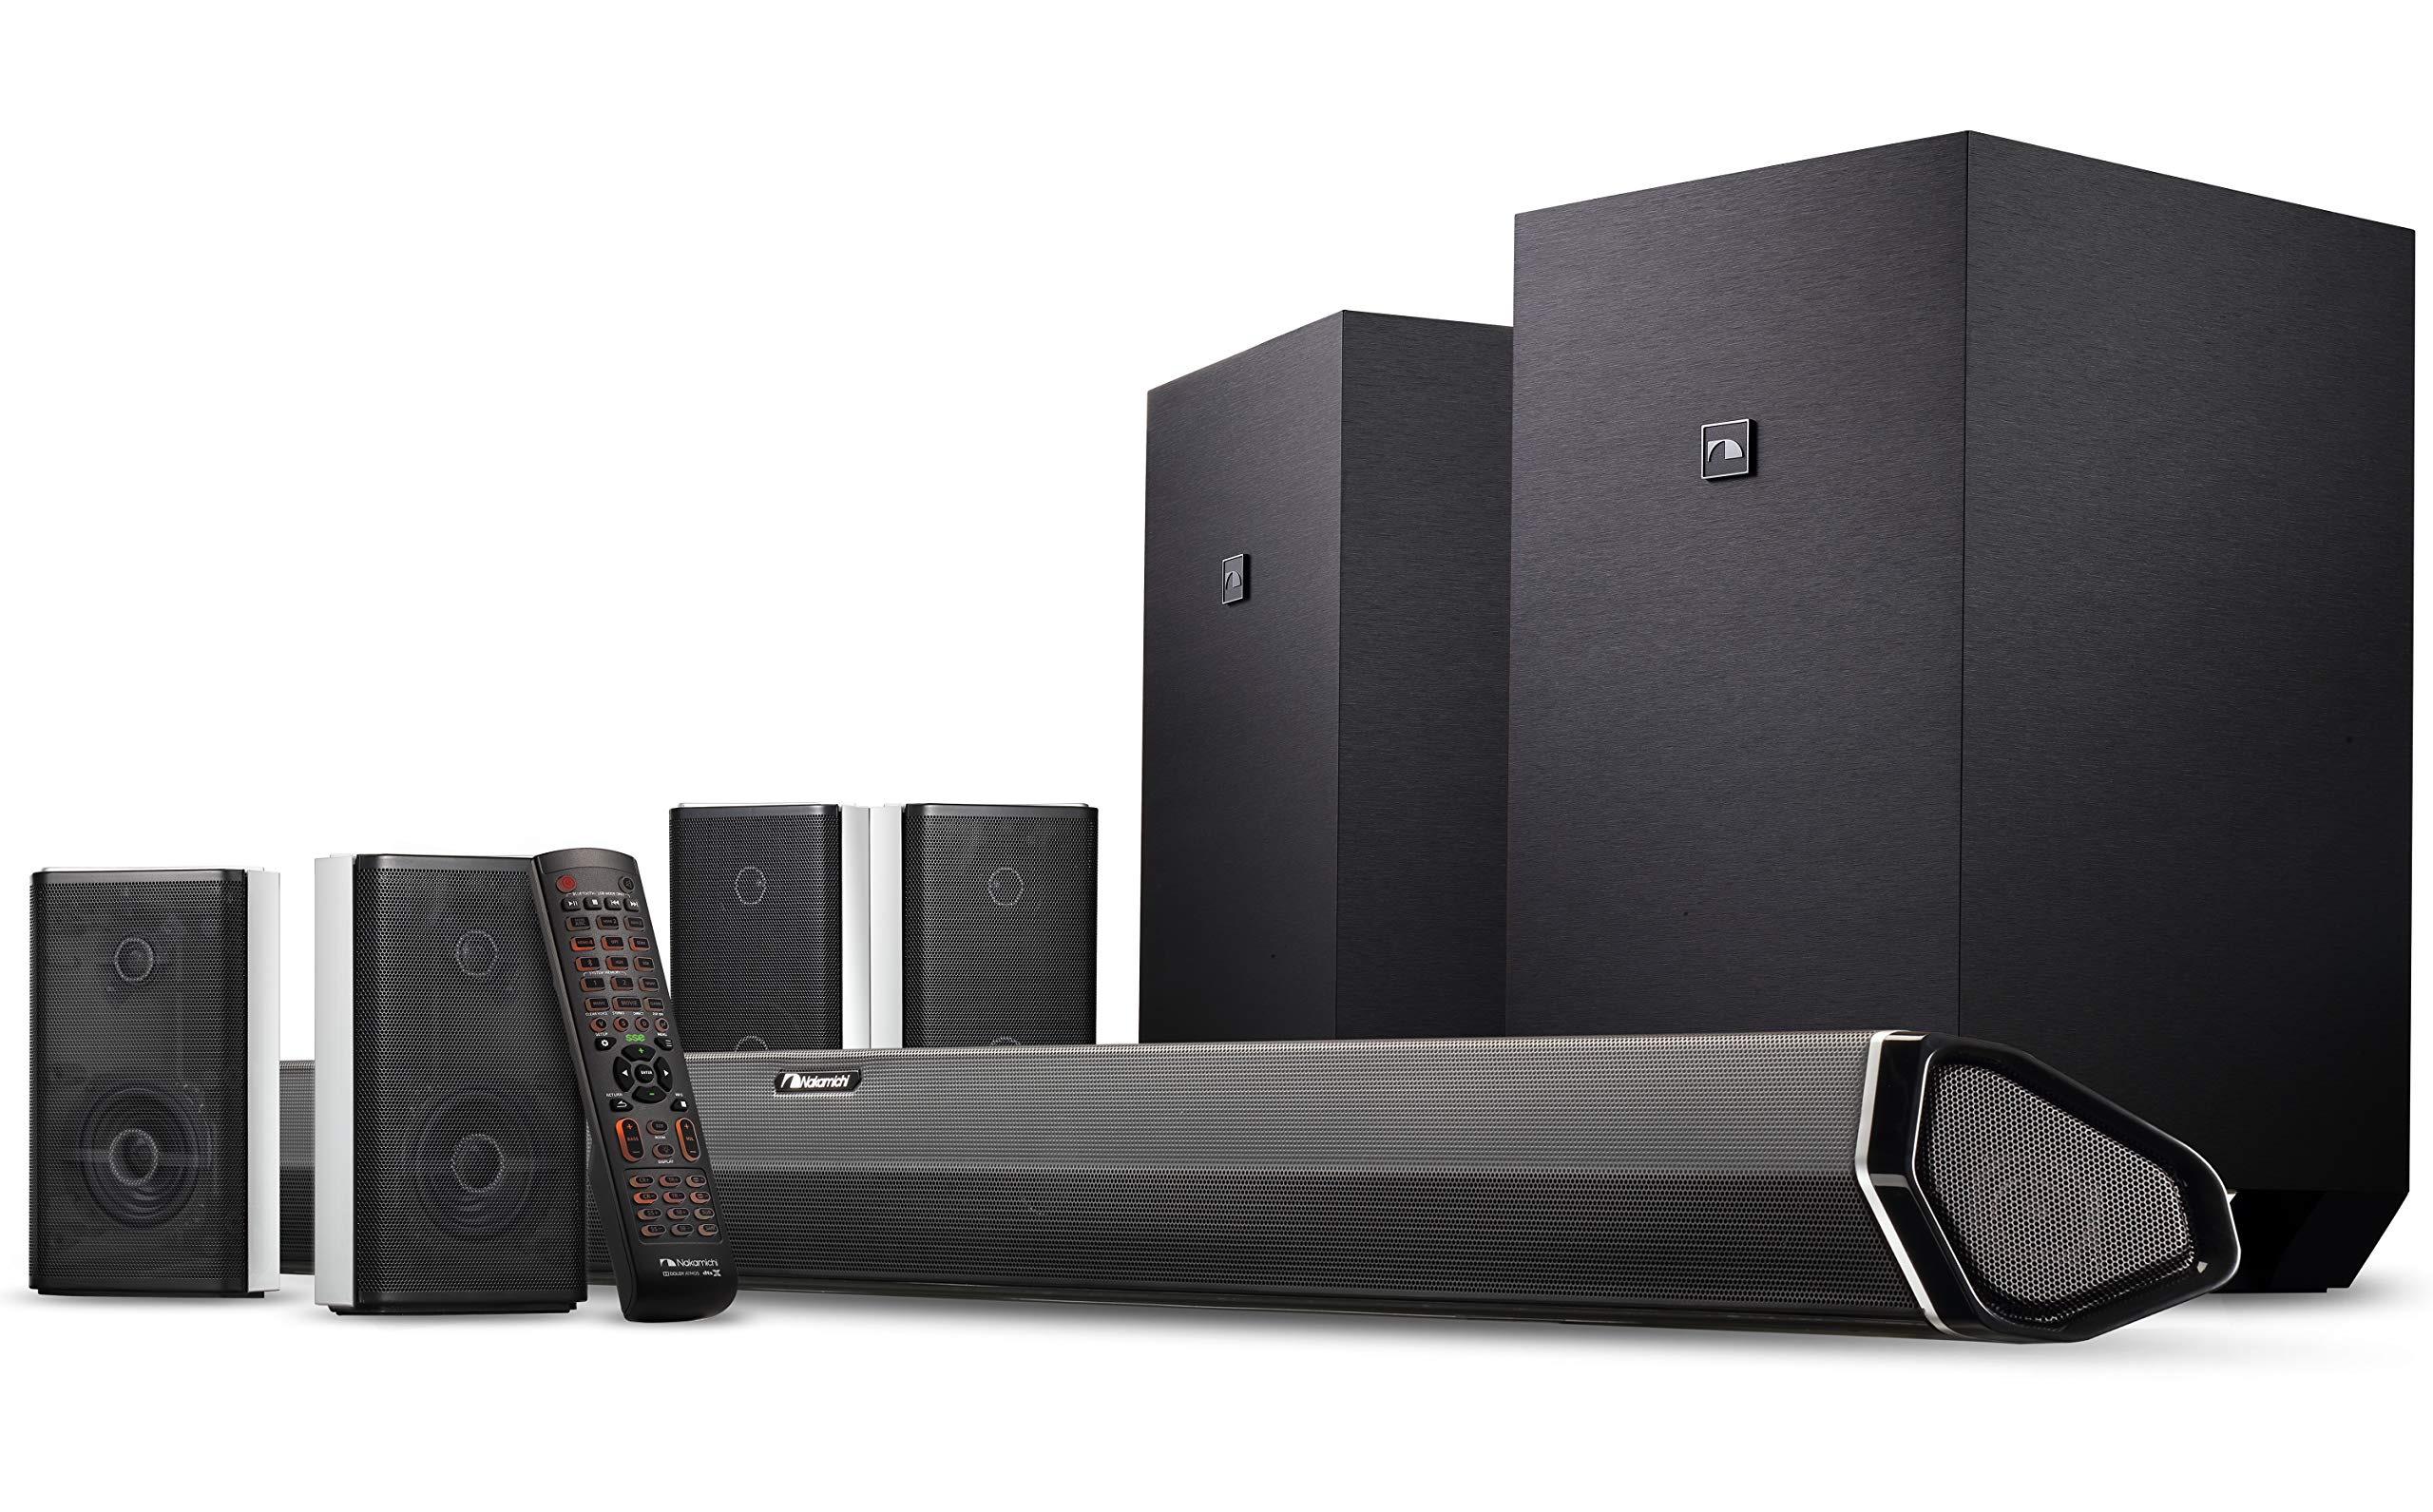 Nakamichi Shockwafe Ultra 9.2.4Ch 1000W Soundbar System with Dolby Atmos, Dolby Vision, Dual 10'' Subs (Wireless) & Four 2-Way Rear Speakers